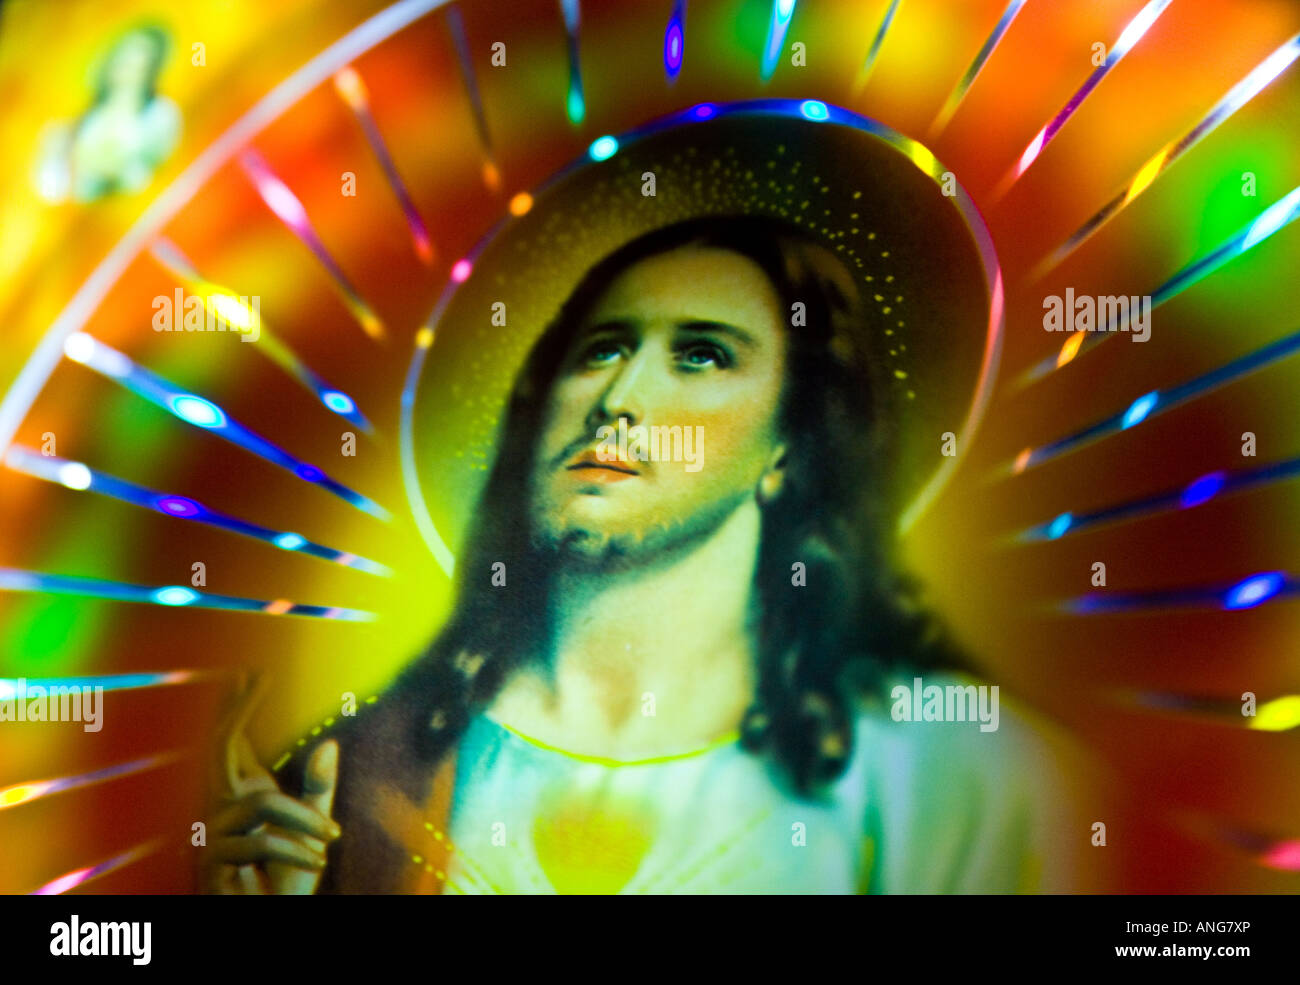 artwork of Jesus illuminated by colorful lights. - Stock Image